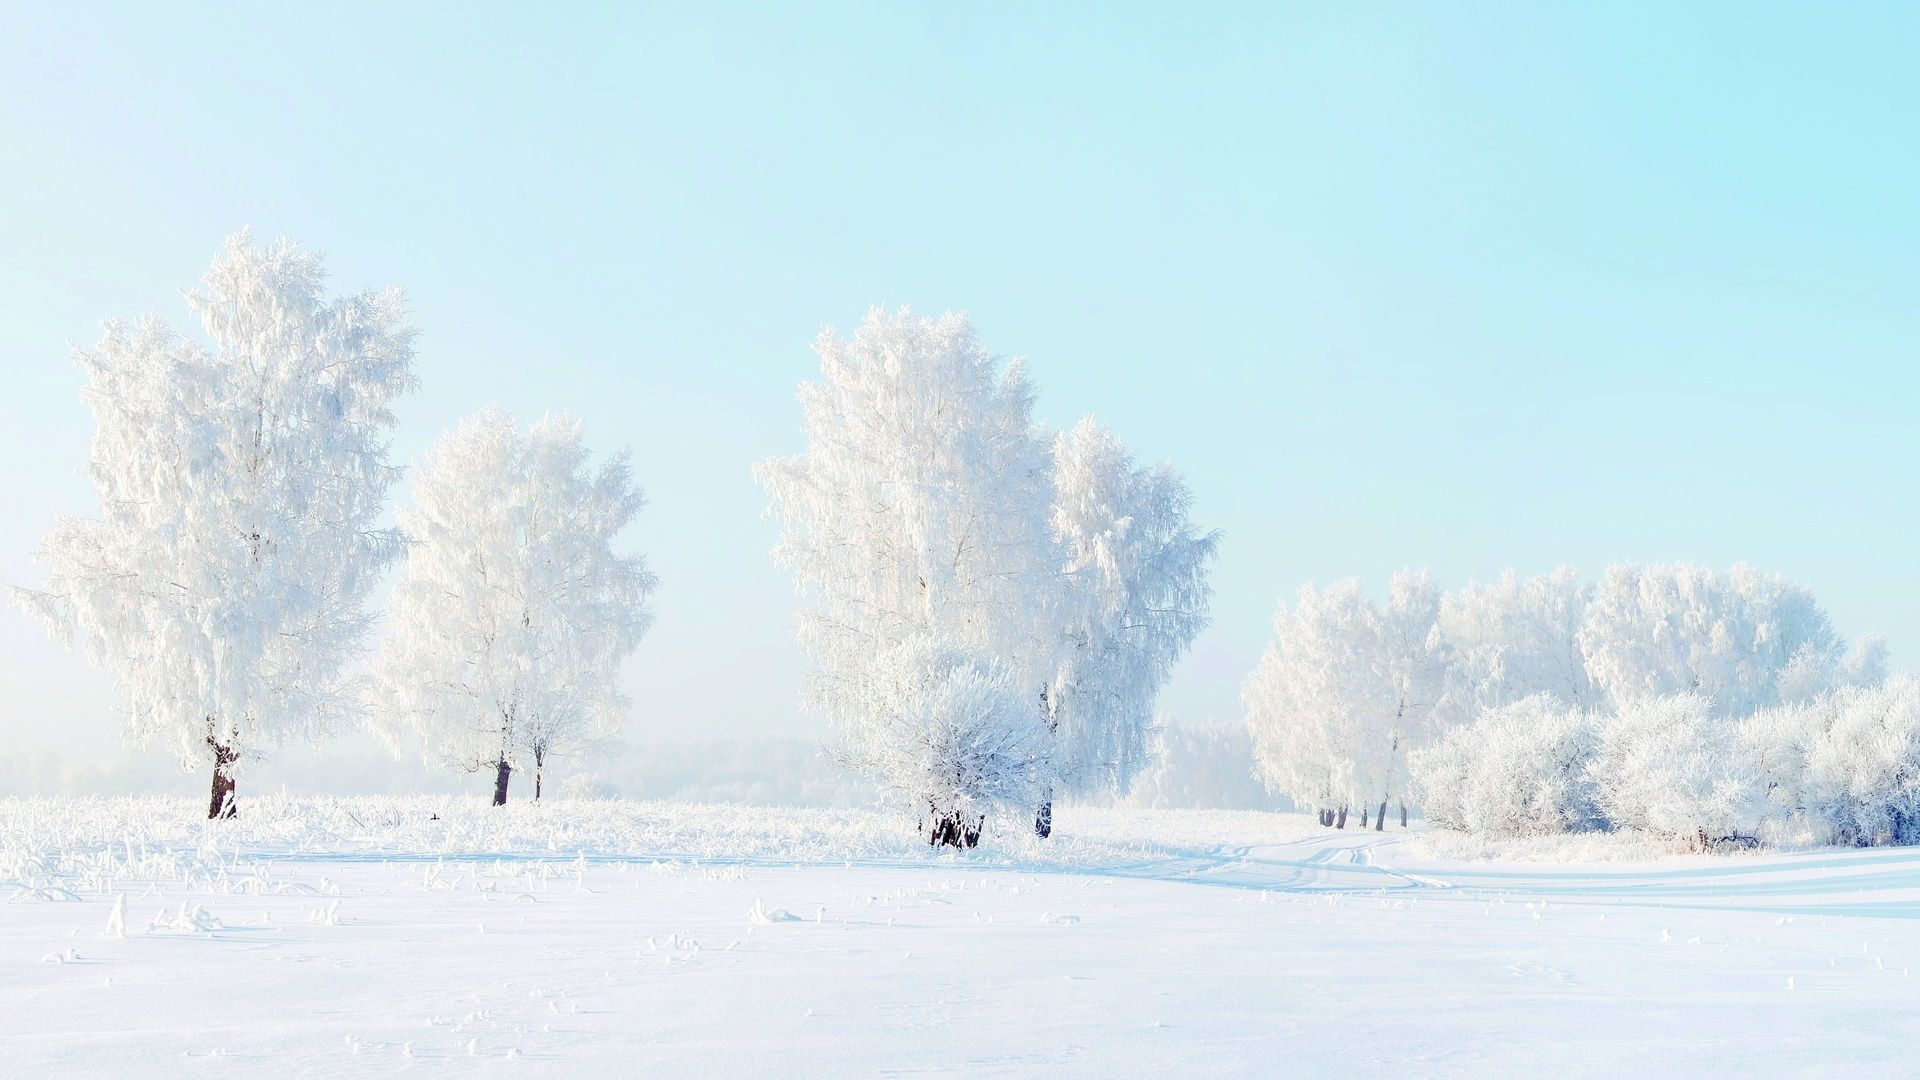 Winter Landscape 2